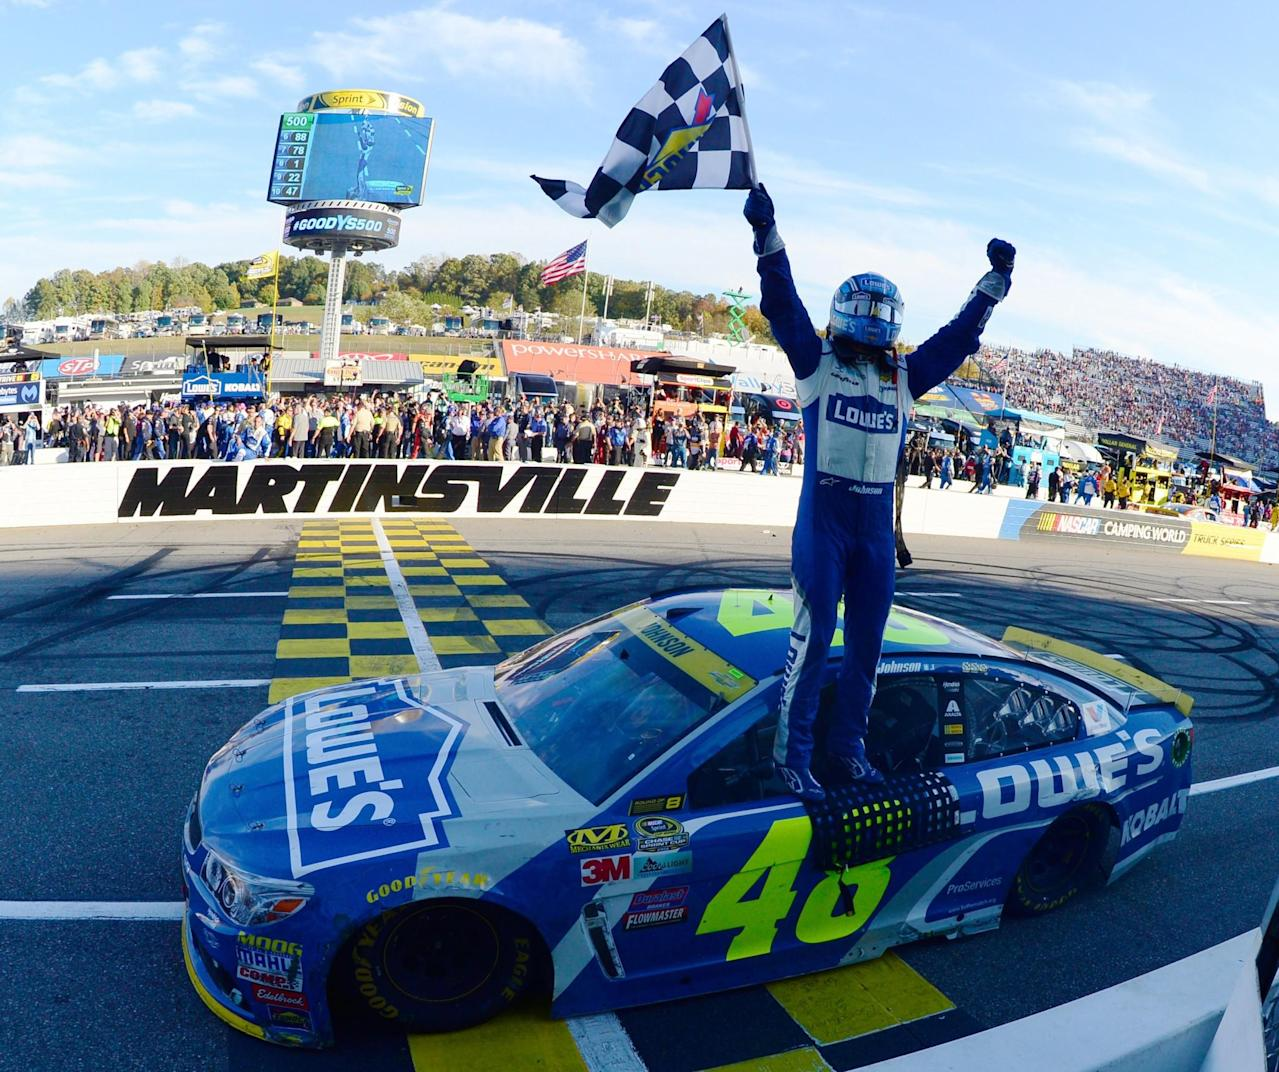 Power Rankings: Jimmie Johnson gets a win and retakes the top spot